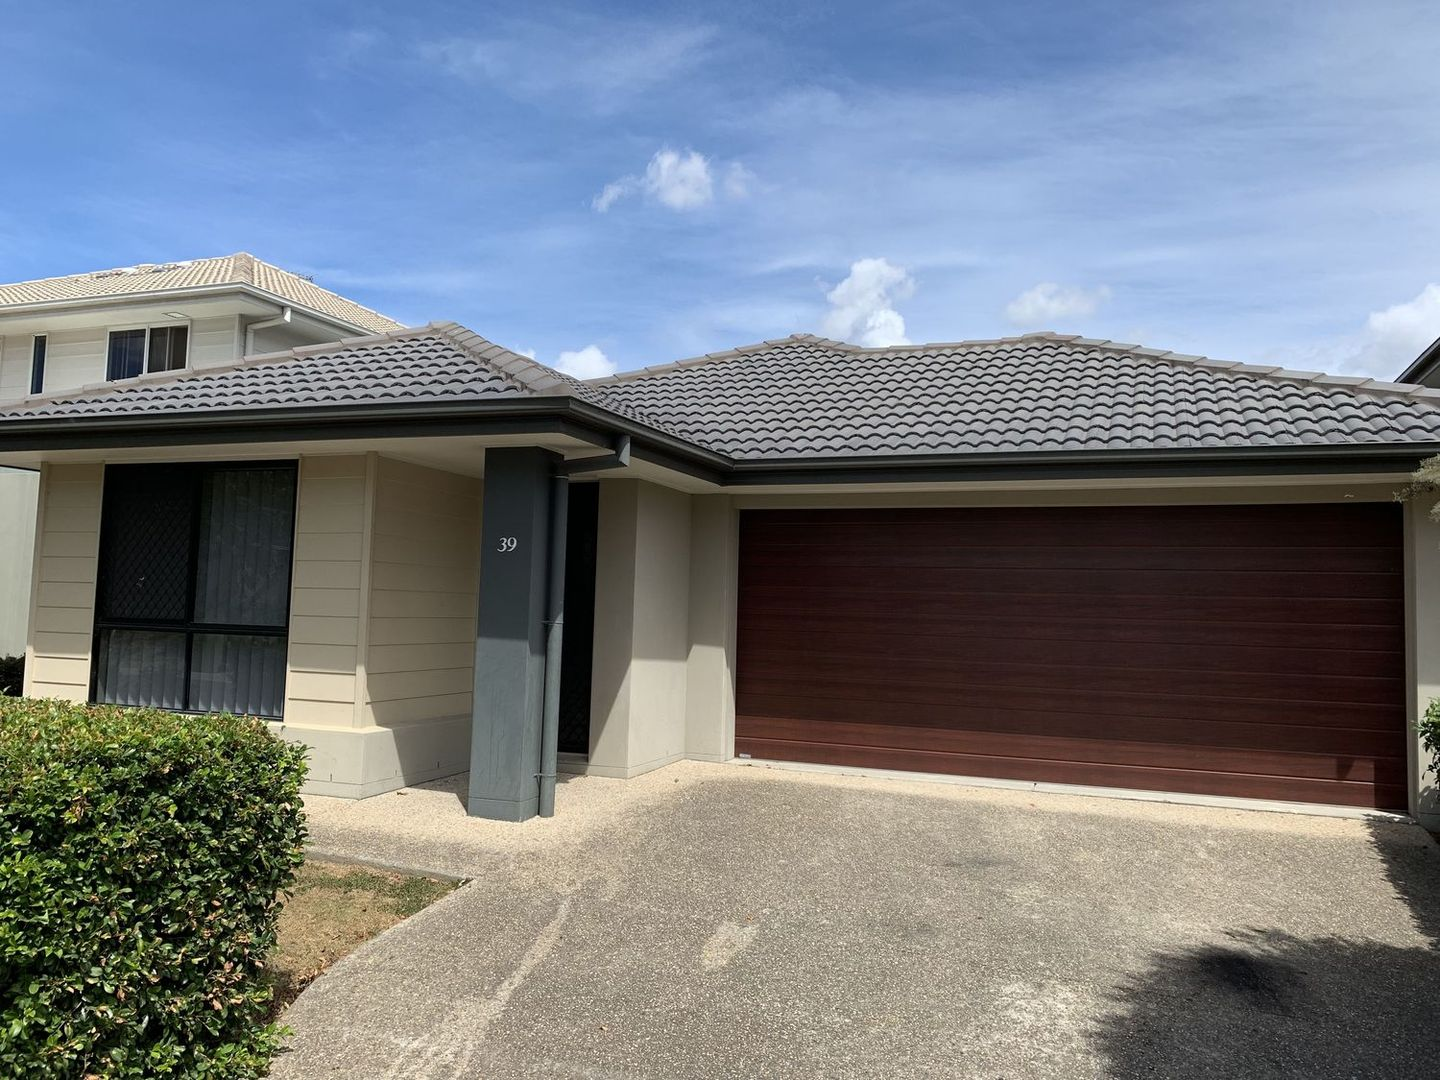 39/6-8 Macquarie Way, Browns Plains QLD 4118, Image 0